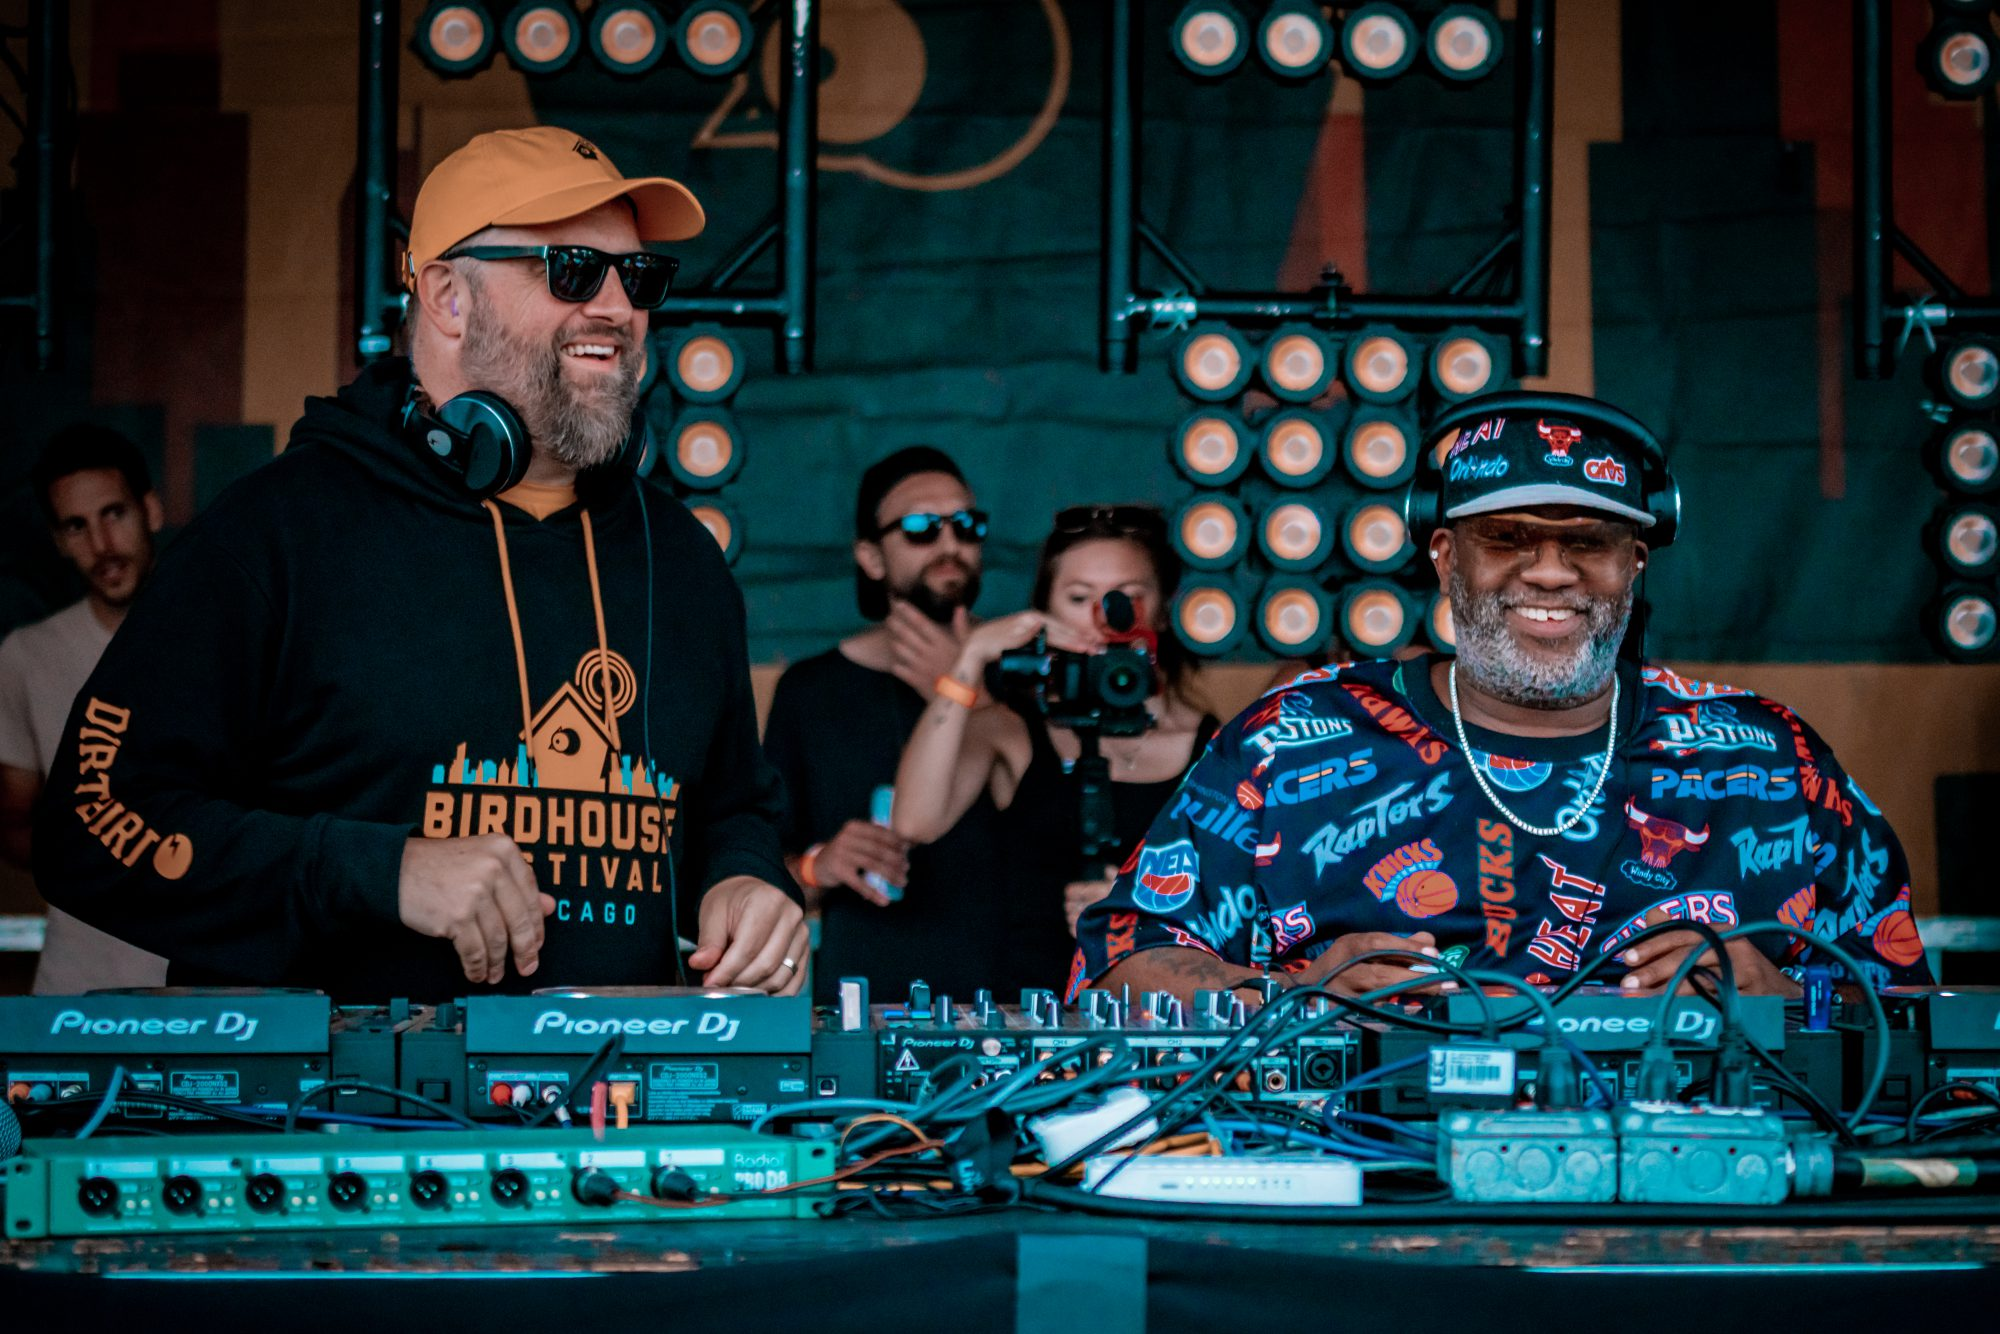 Claude VonStroke & Paul Johnson Birdhouse Festival 2019